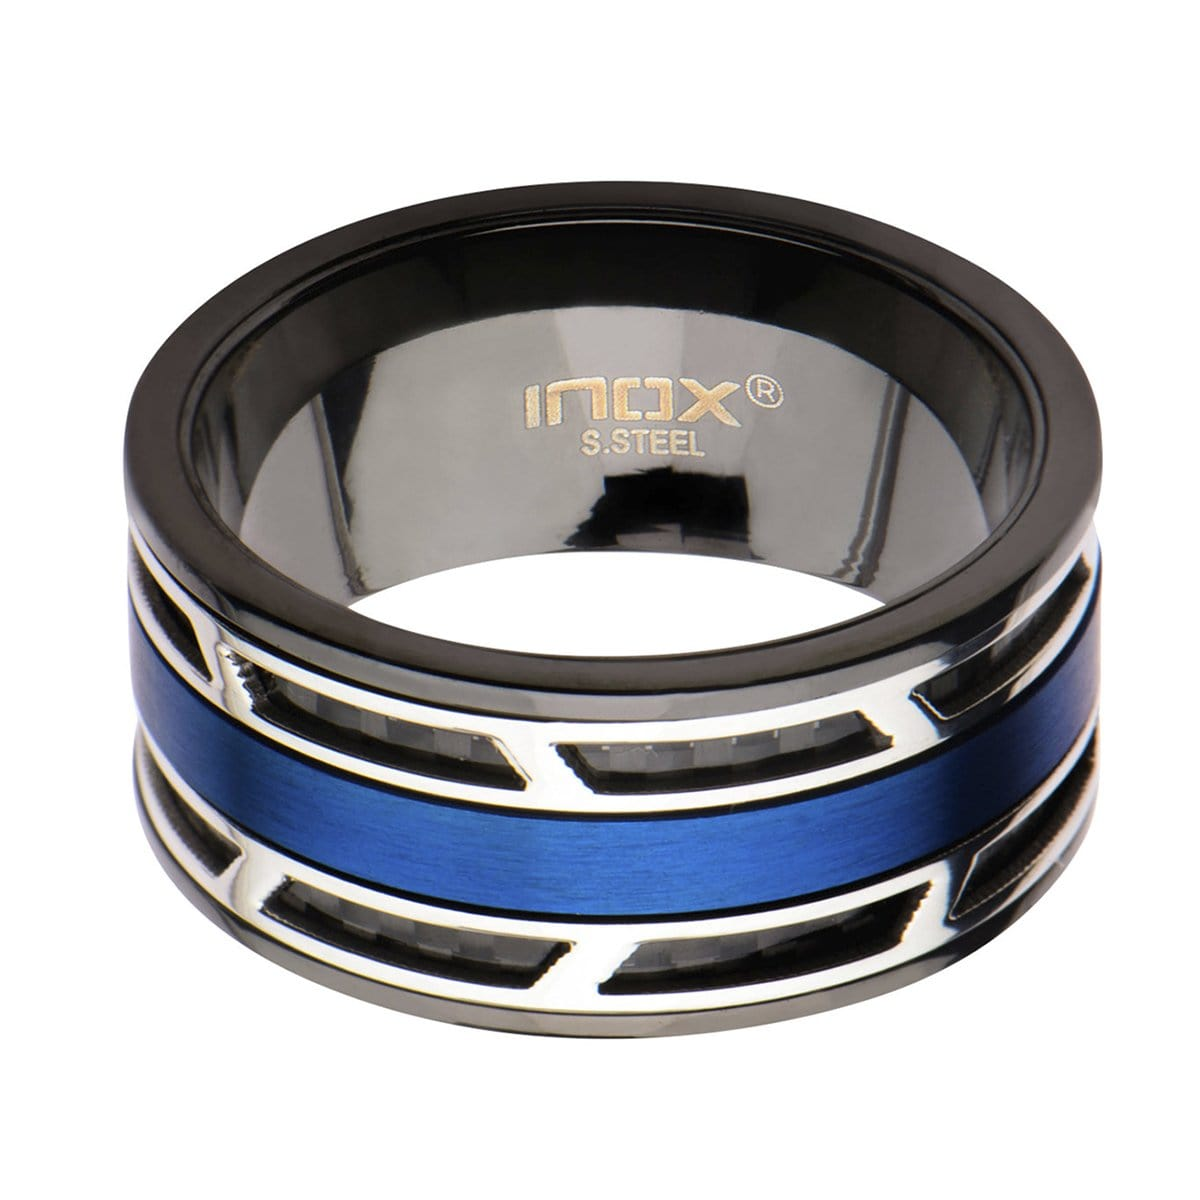 Silver, Blue & Black Stainless Steel with Inlaid Carbon Fiber Ring Rings